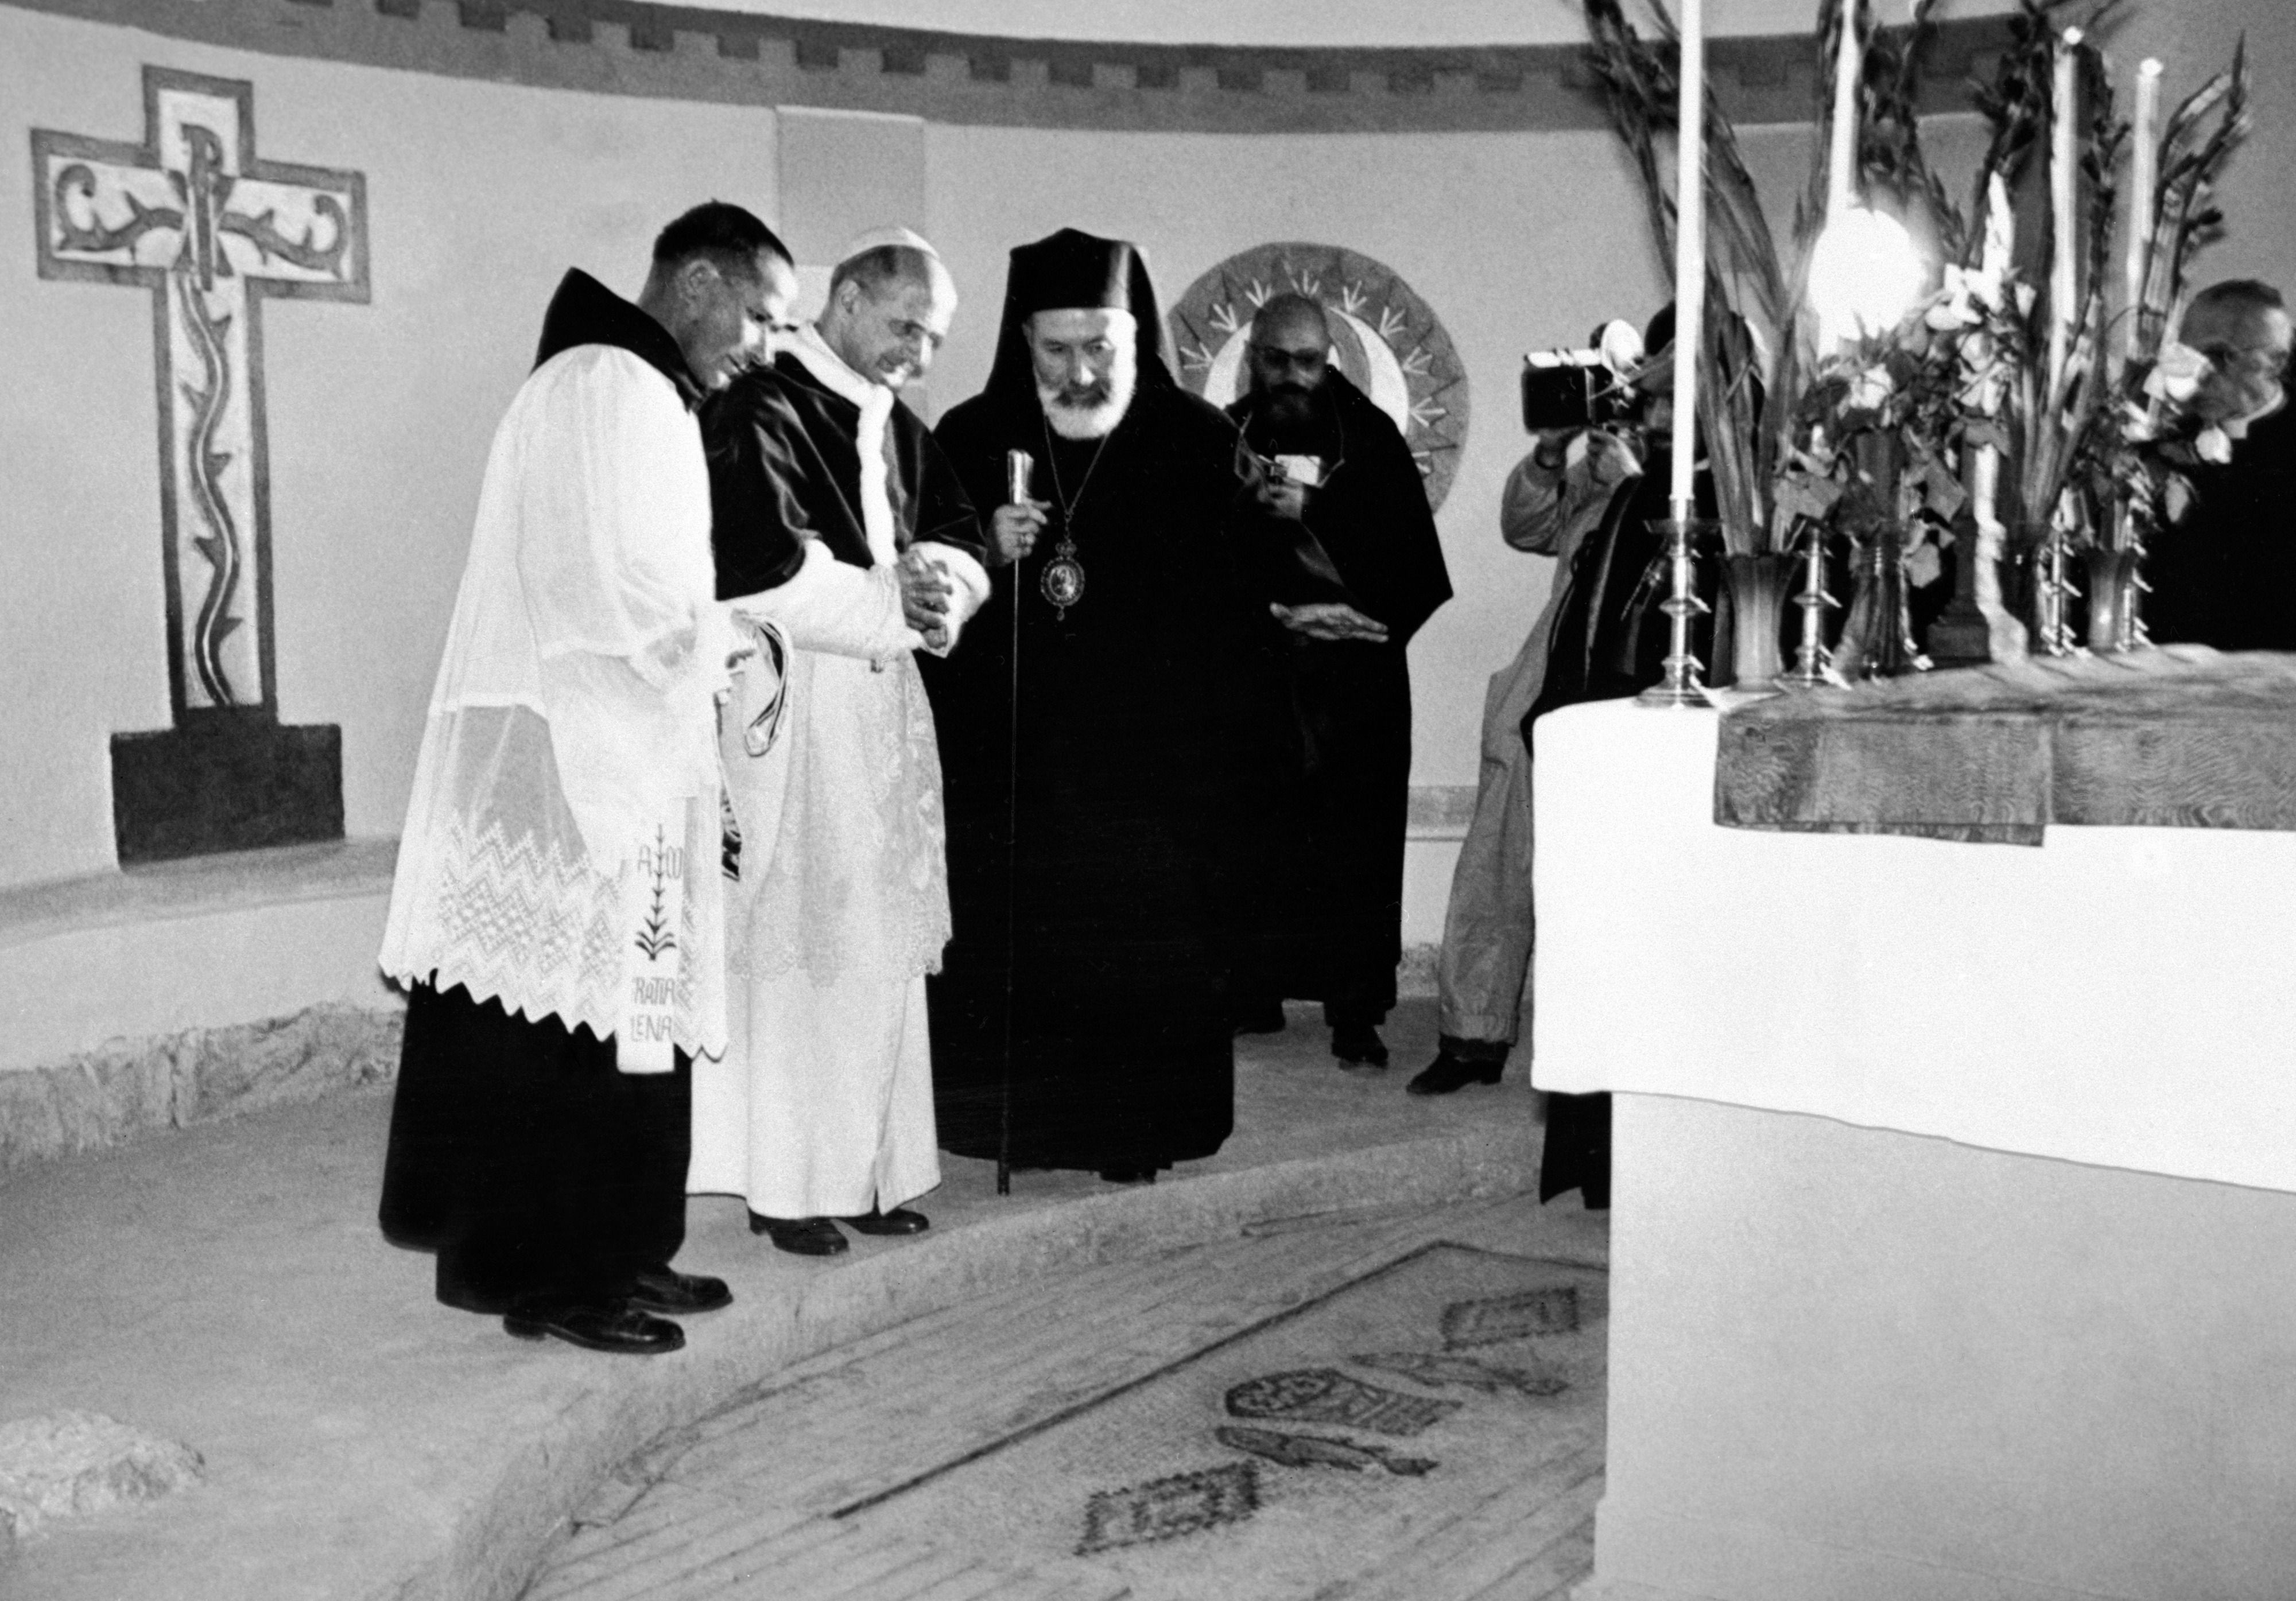 Pope Paul VI visits the Church of the Multiplication of Loaves and Fishes in 1964